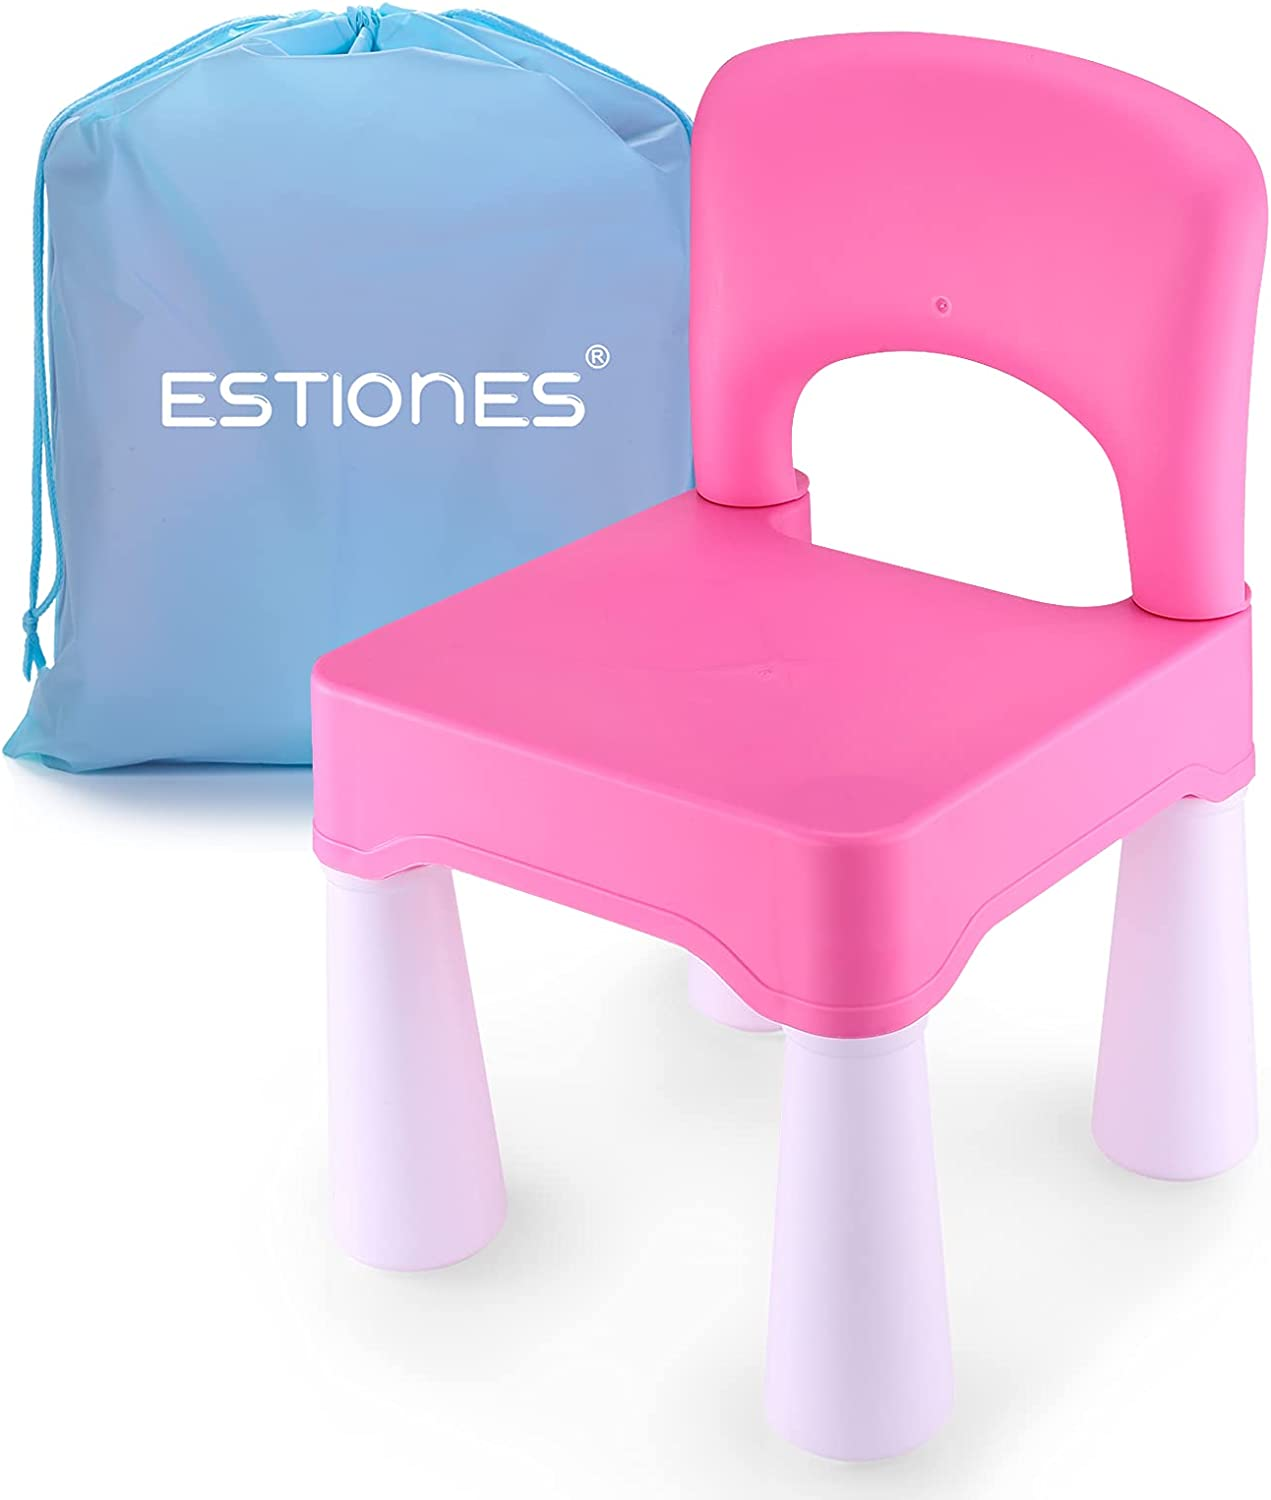 ESTIONES Kids Chair, Toddler Chair, Toddler Chairs for Boys and Girls, an Extra Portable Storage Bag, Ergonomic Design, Environmentally Friendly Durable Plastic (Barbie Pink)